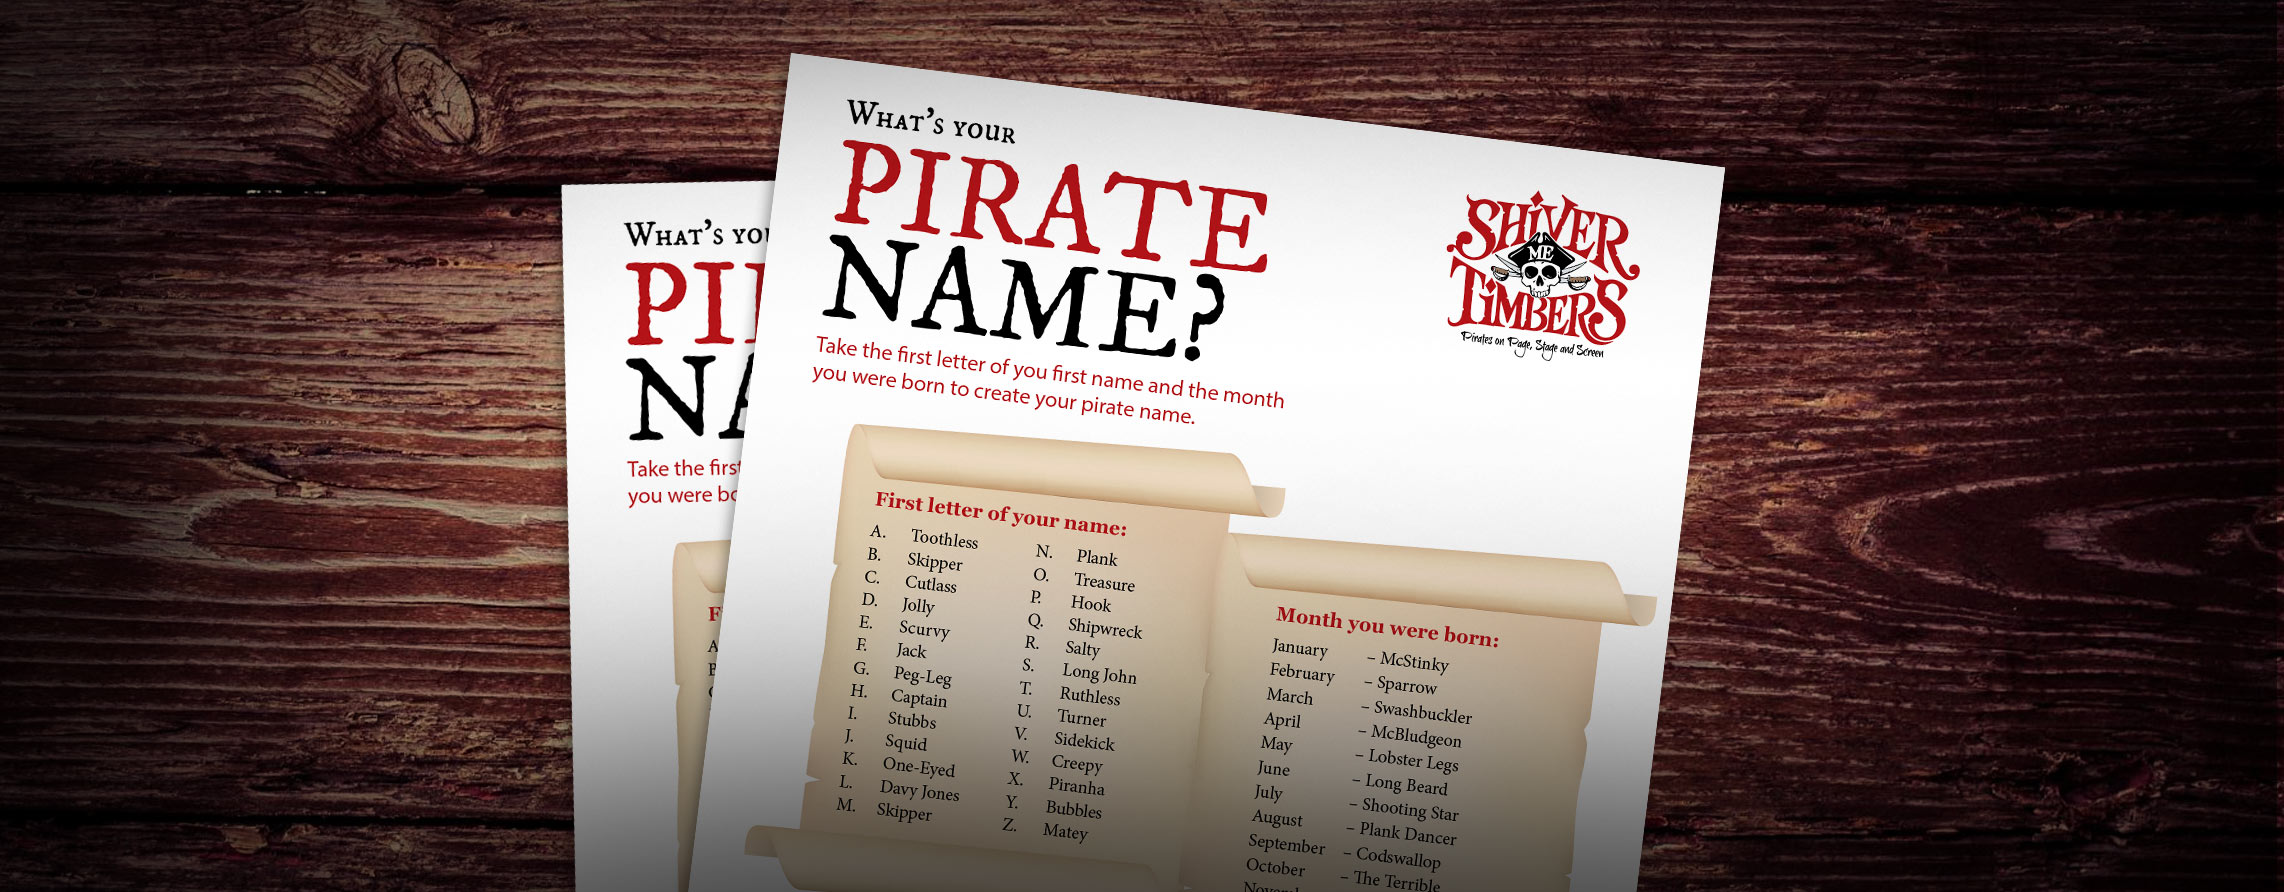 What's Your Pirate Name?